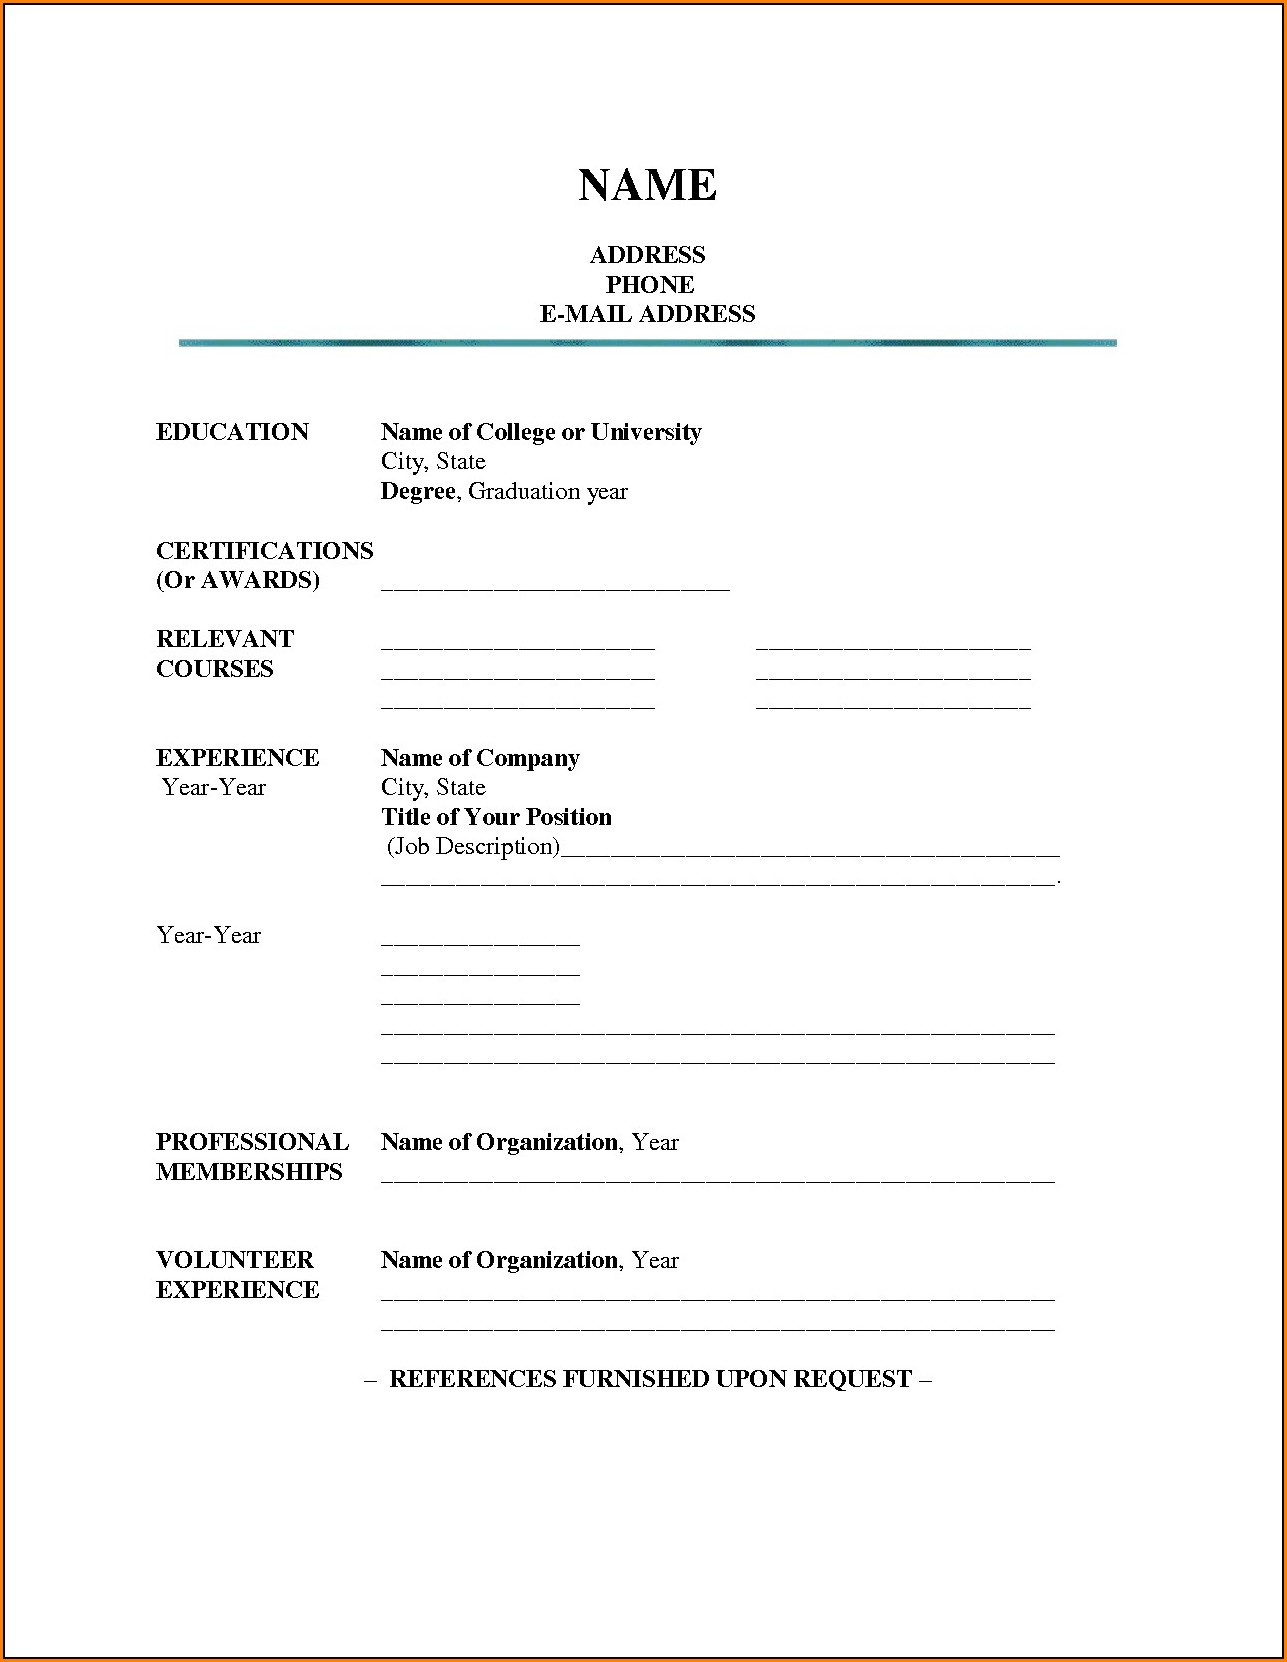 Blank Resume Format Download In Ms Word